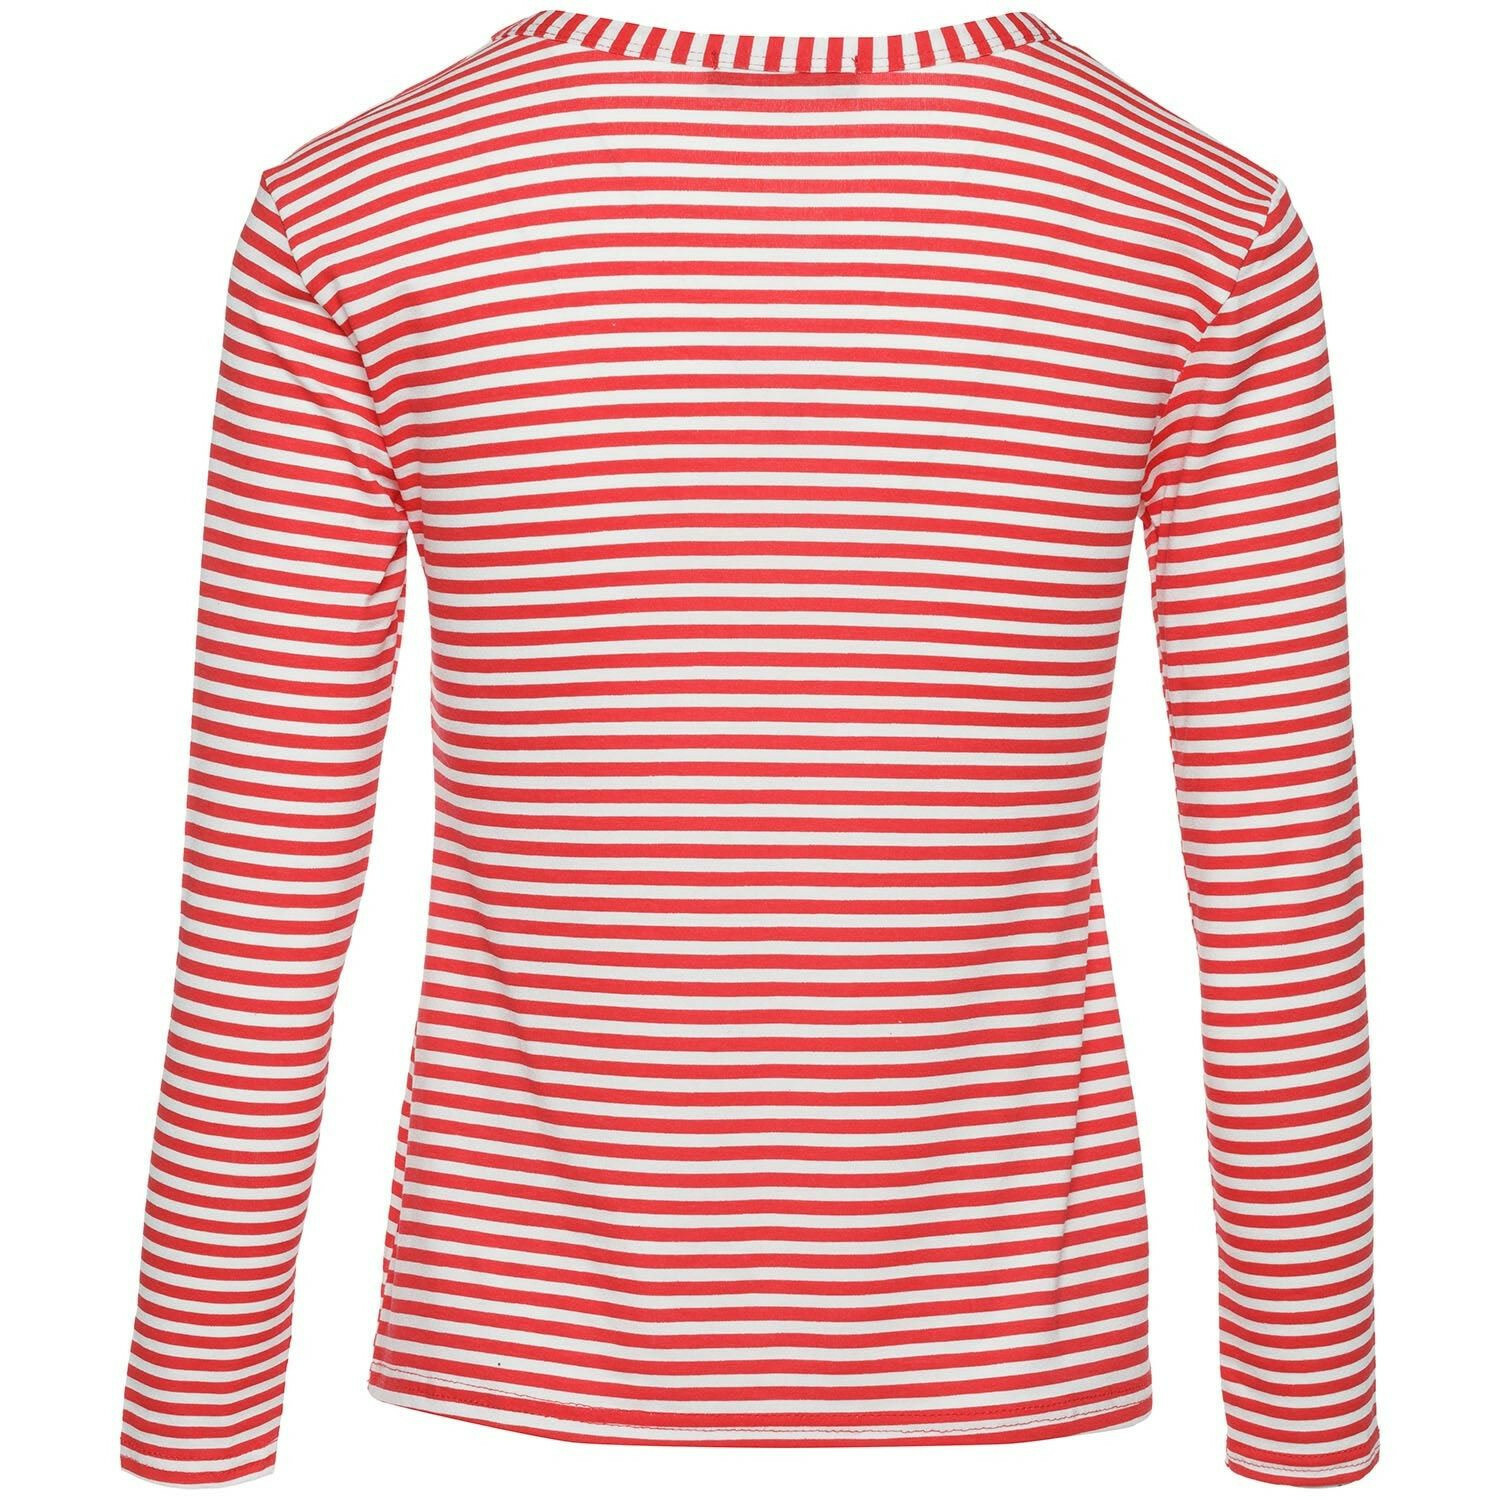 RED CIAO BELLA TOP